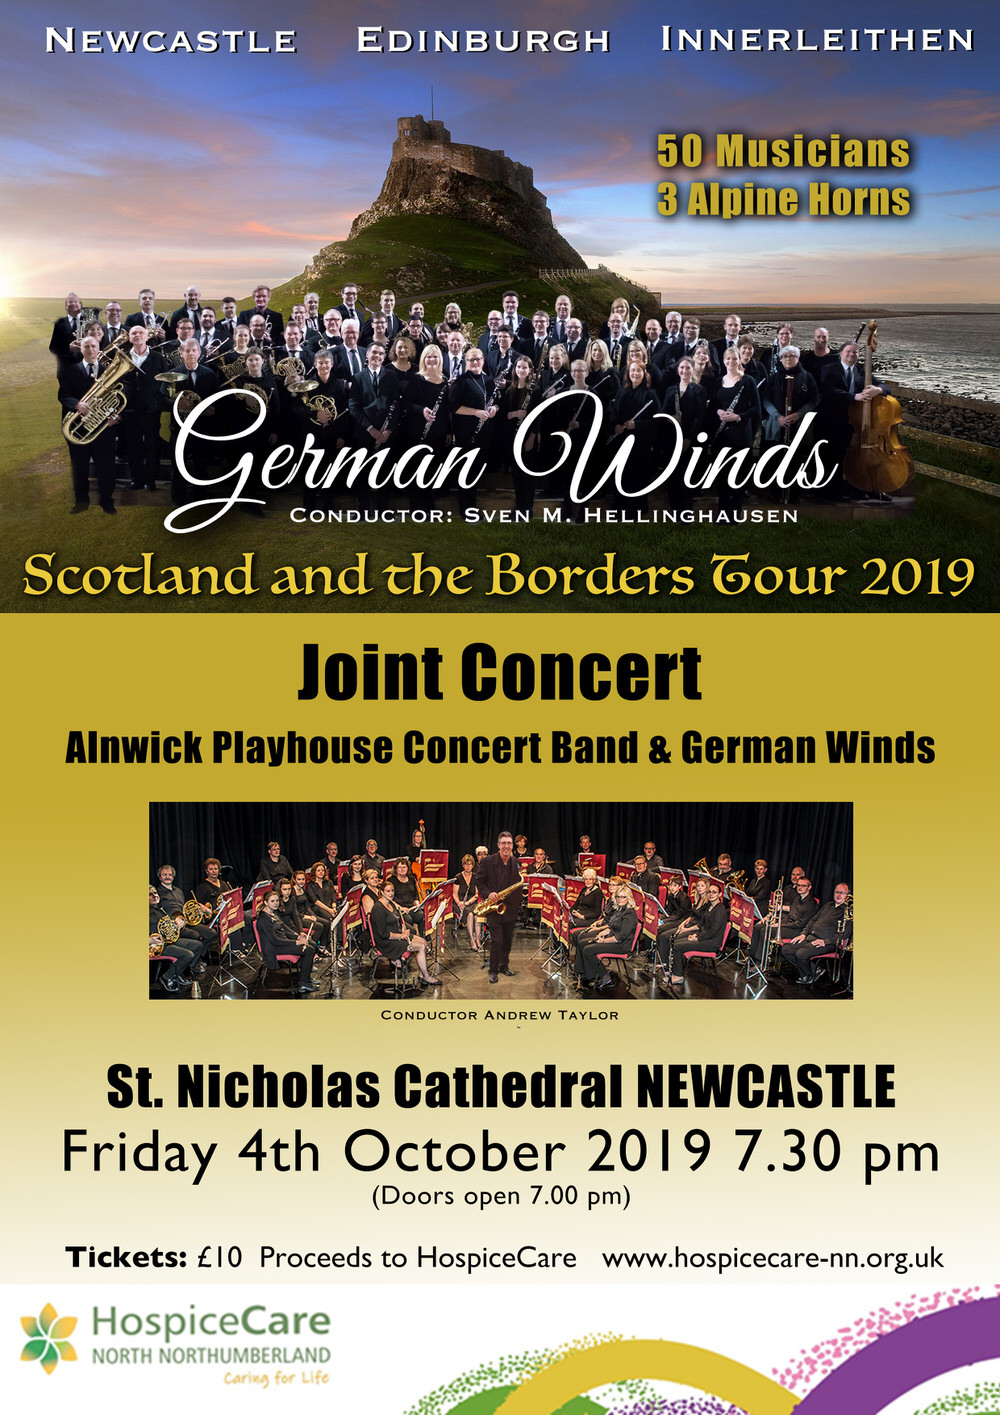 German Winds and Alnwick Playhouse Concert Band